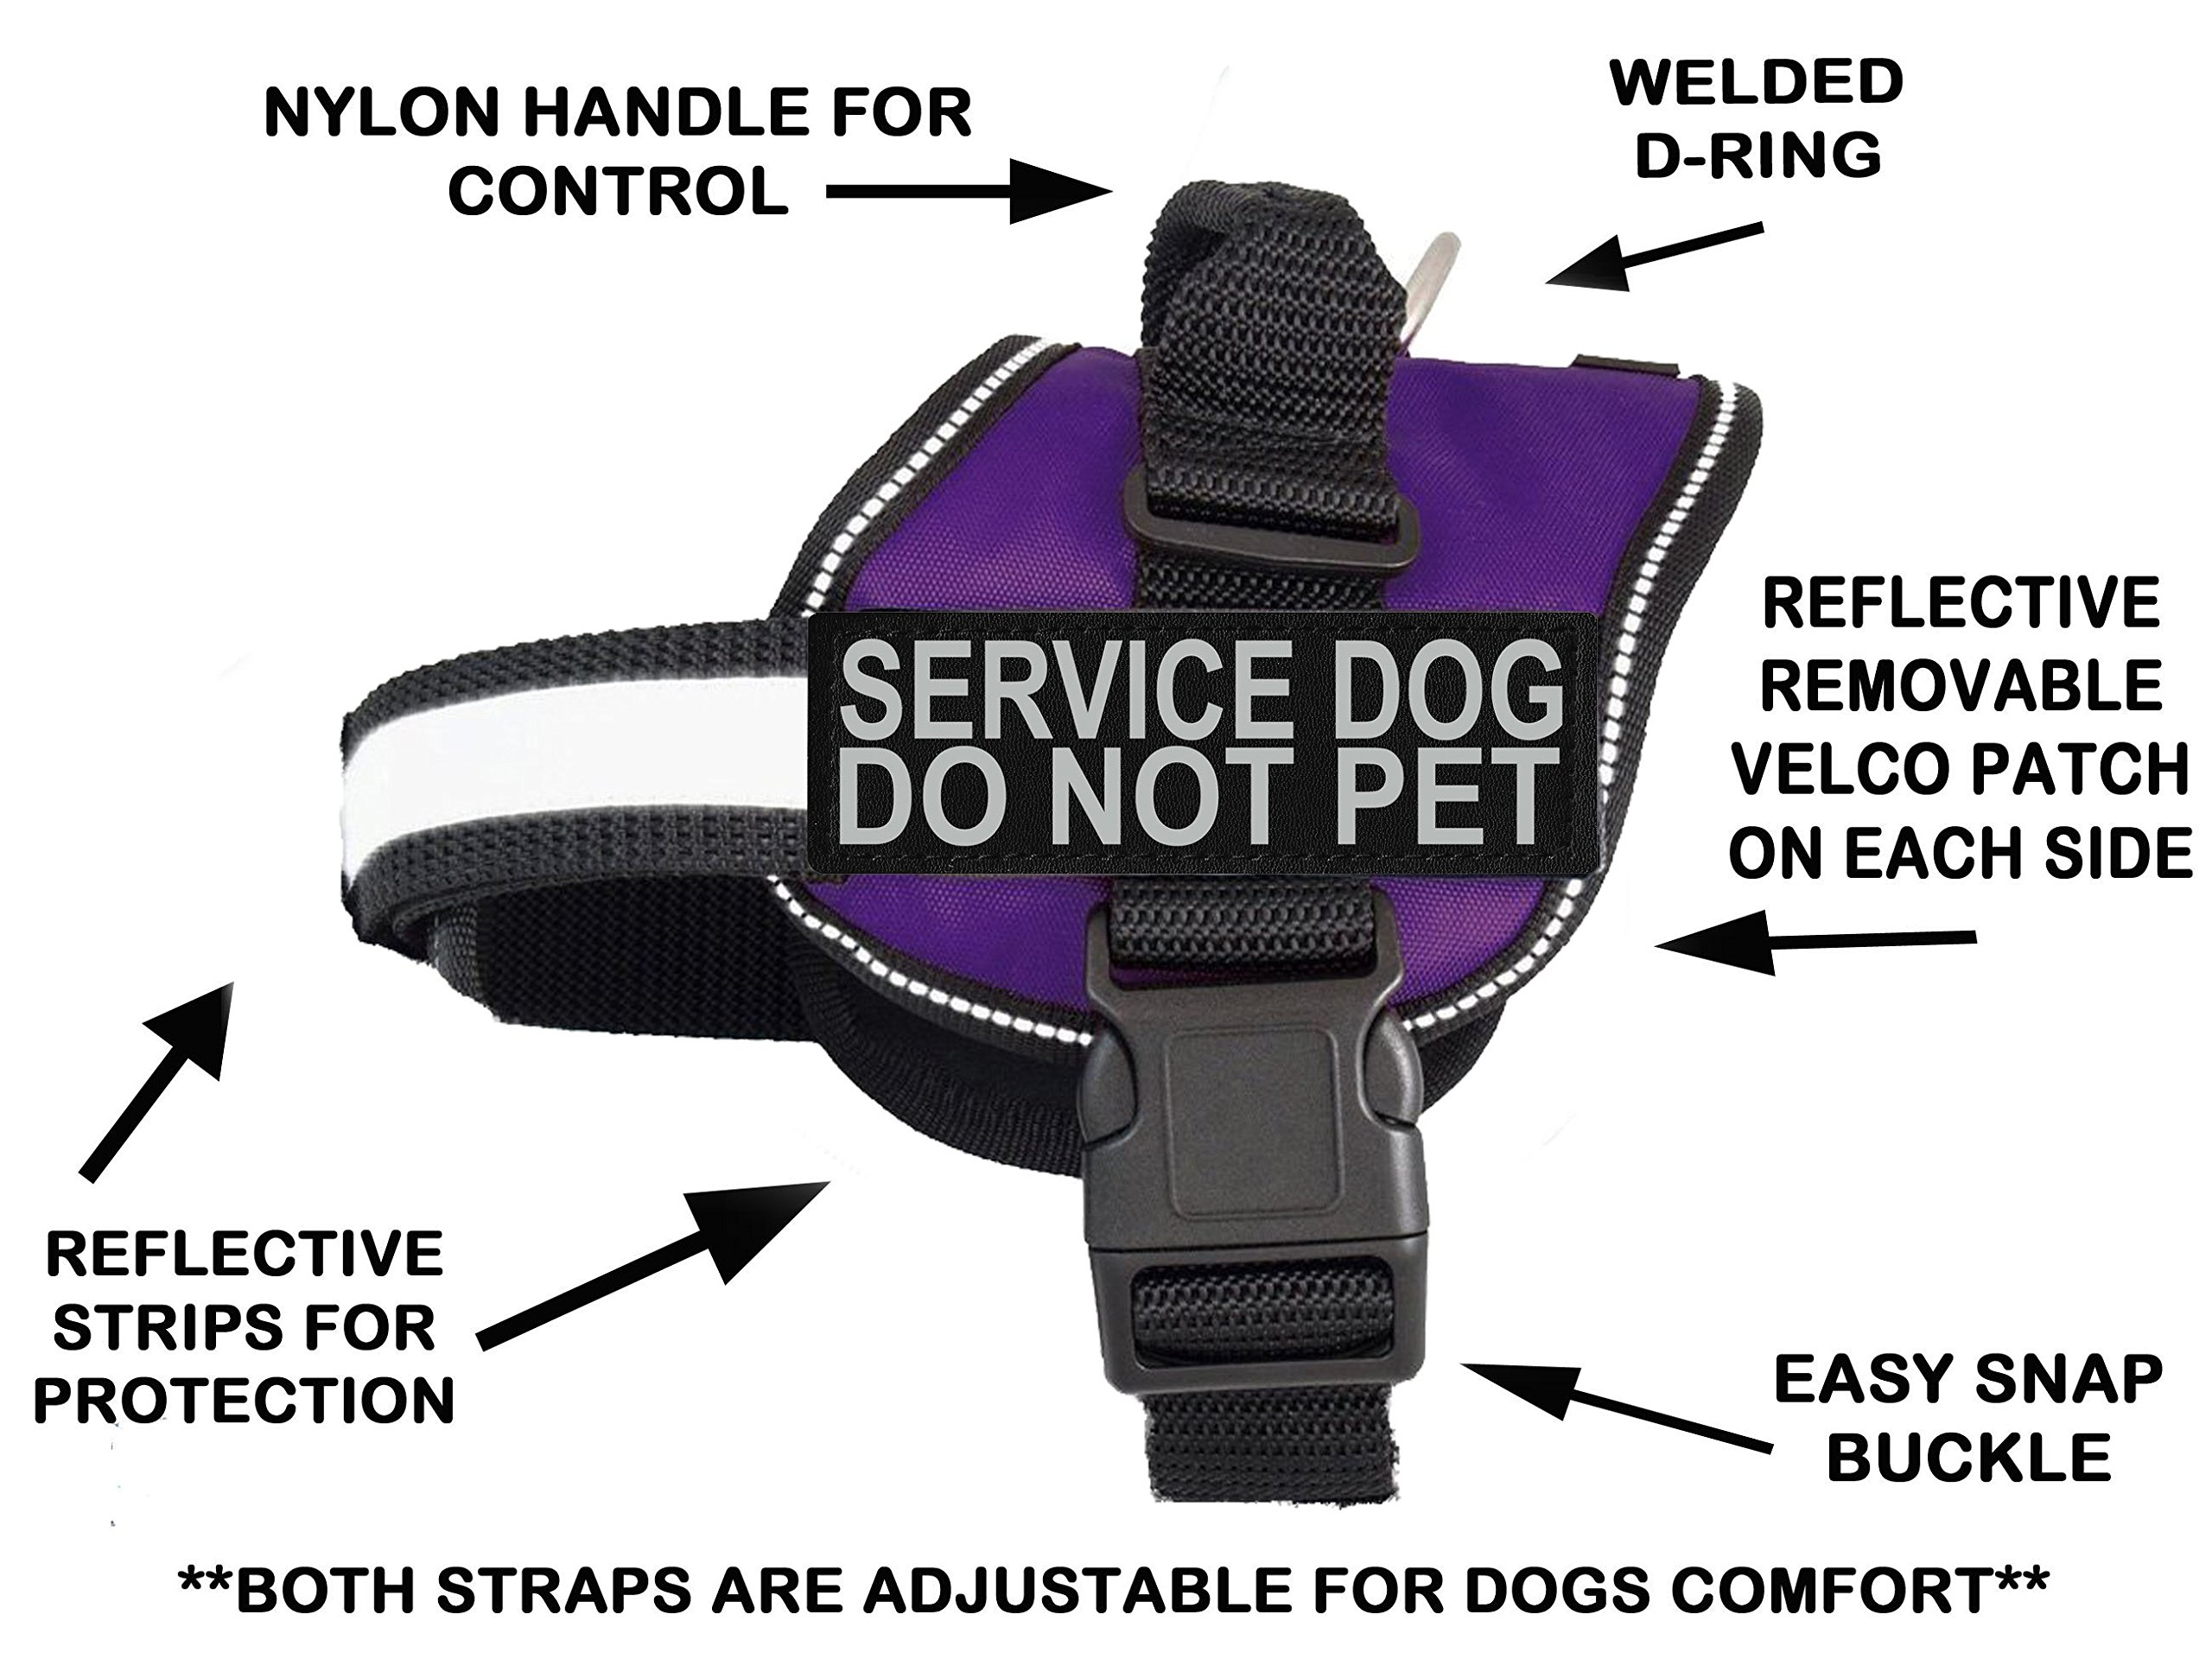 Doggie Stylz Service Dog Harness Vest Comes 2 Reflective Service Dog DO NOT PET Removable Patches. Please Measure Dog Before Ordering